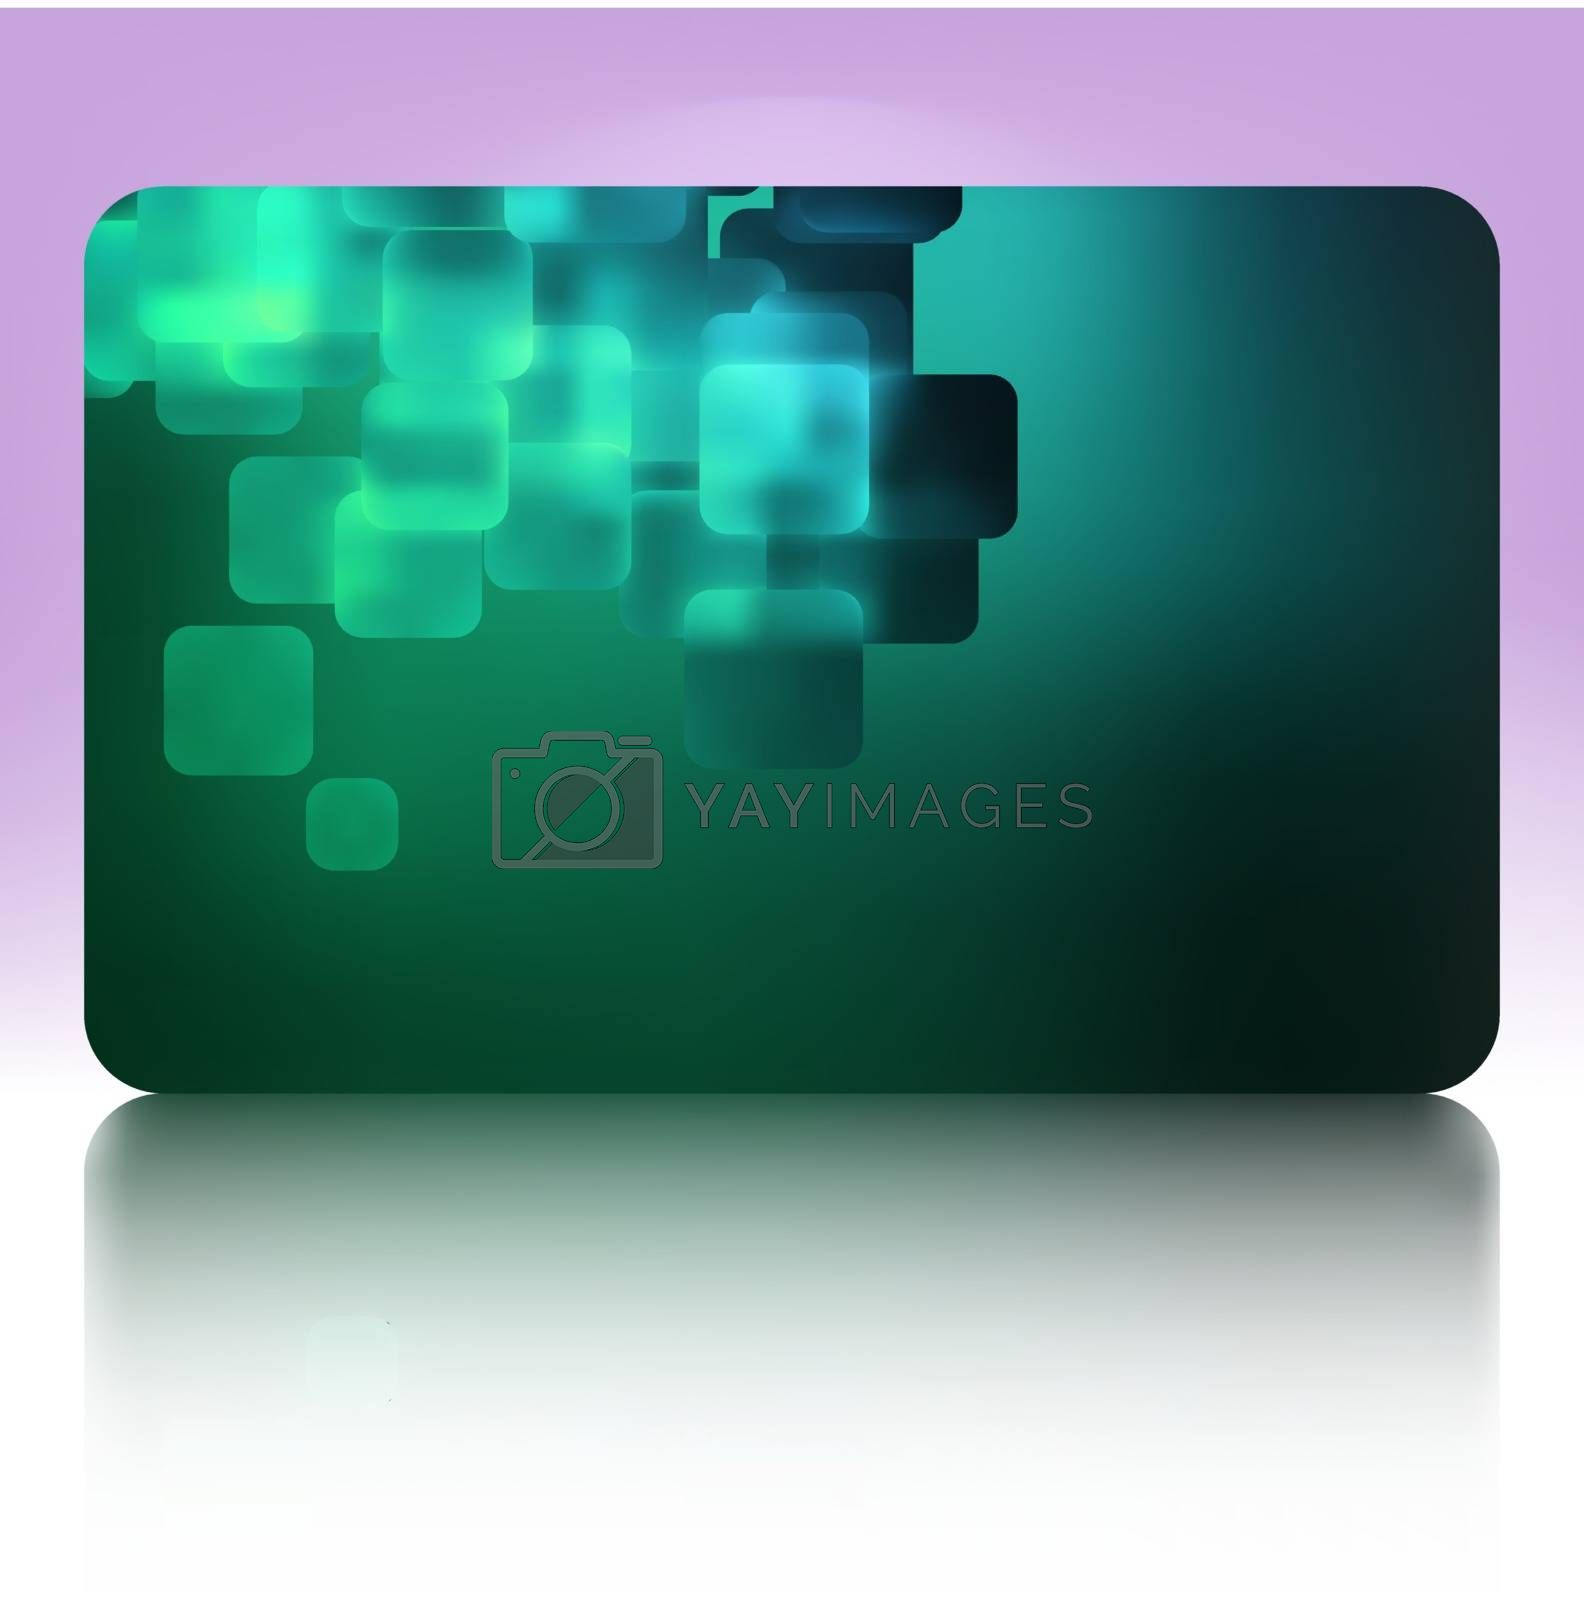 Royalty free image of Beautiful gift card. EPS 8 by Petrov_Vladimir